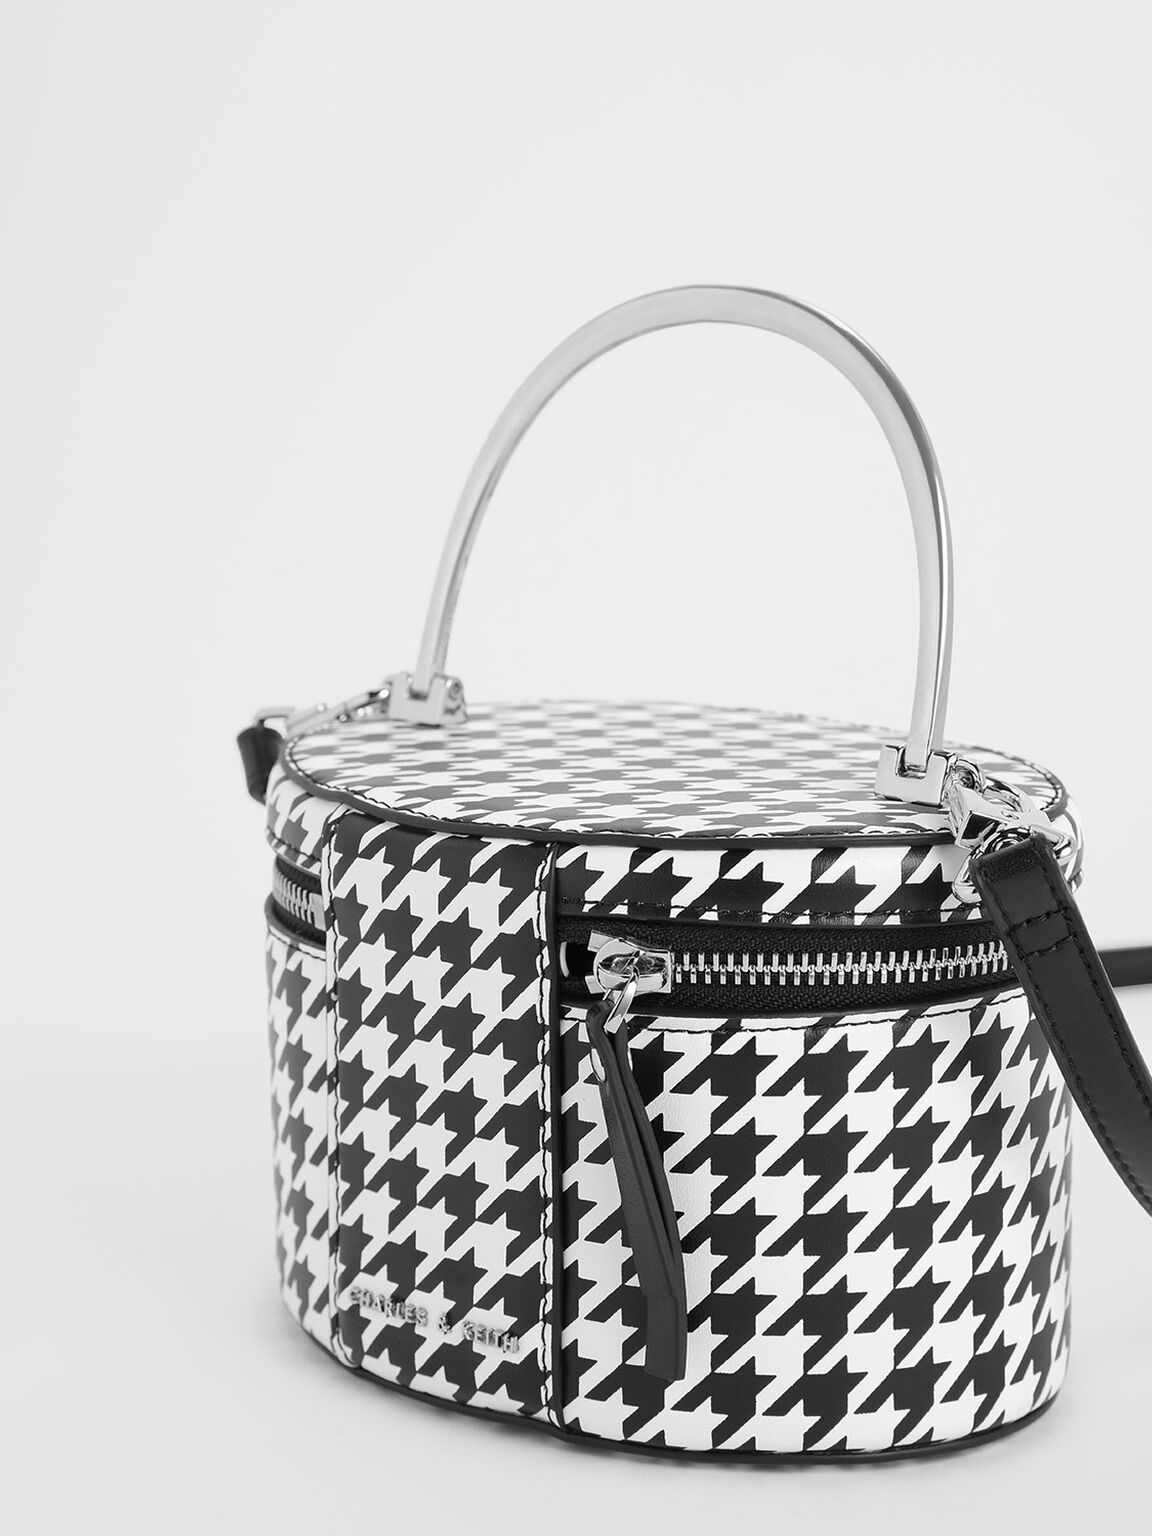 Metal Top Handle Houndstooth Print Round Structured Bag, Multi, hi-res